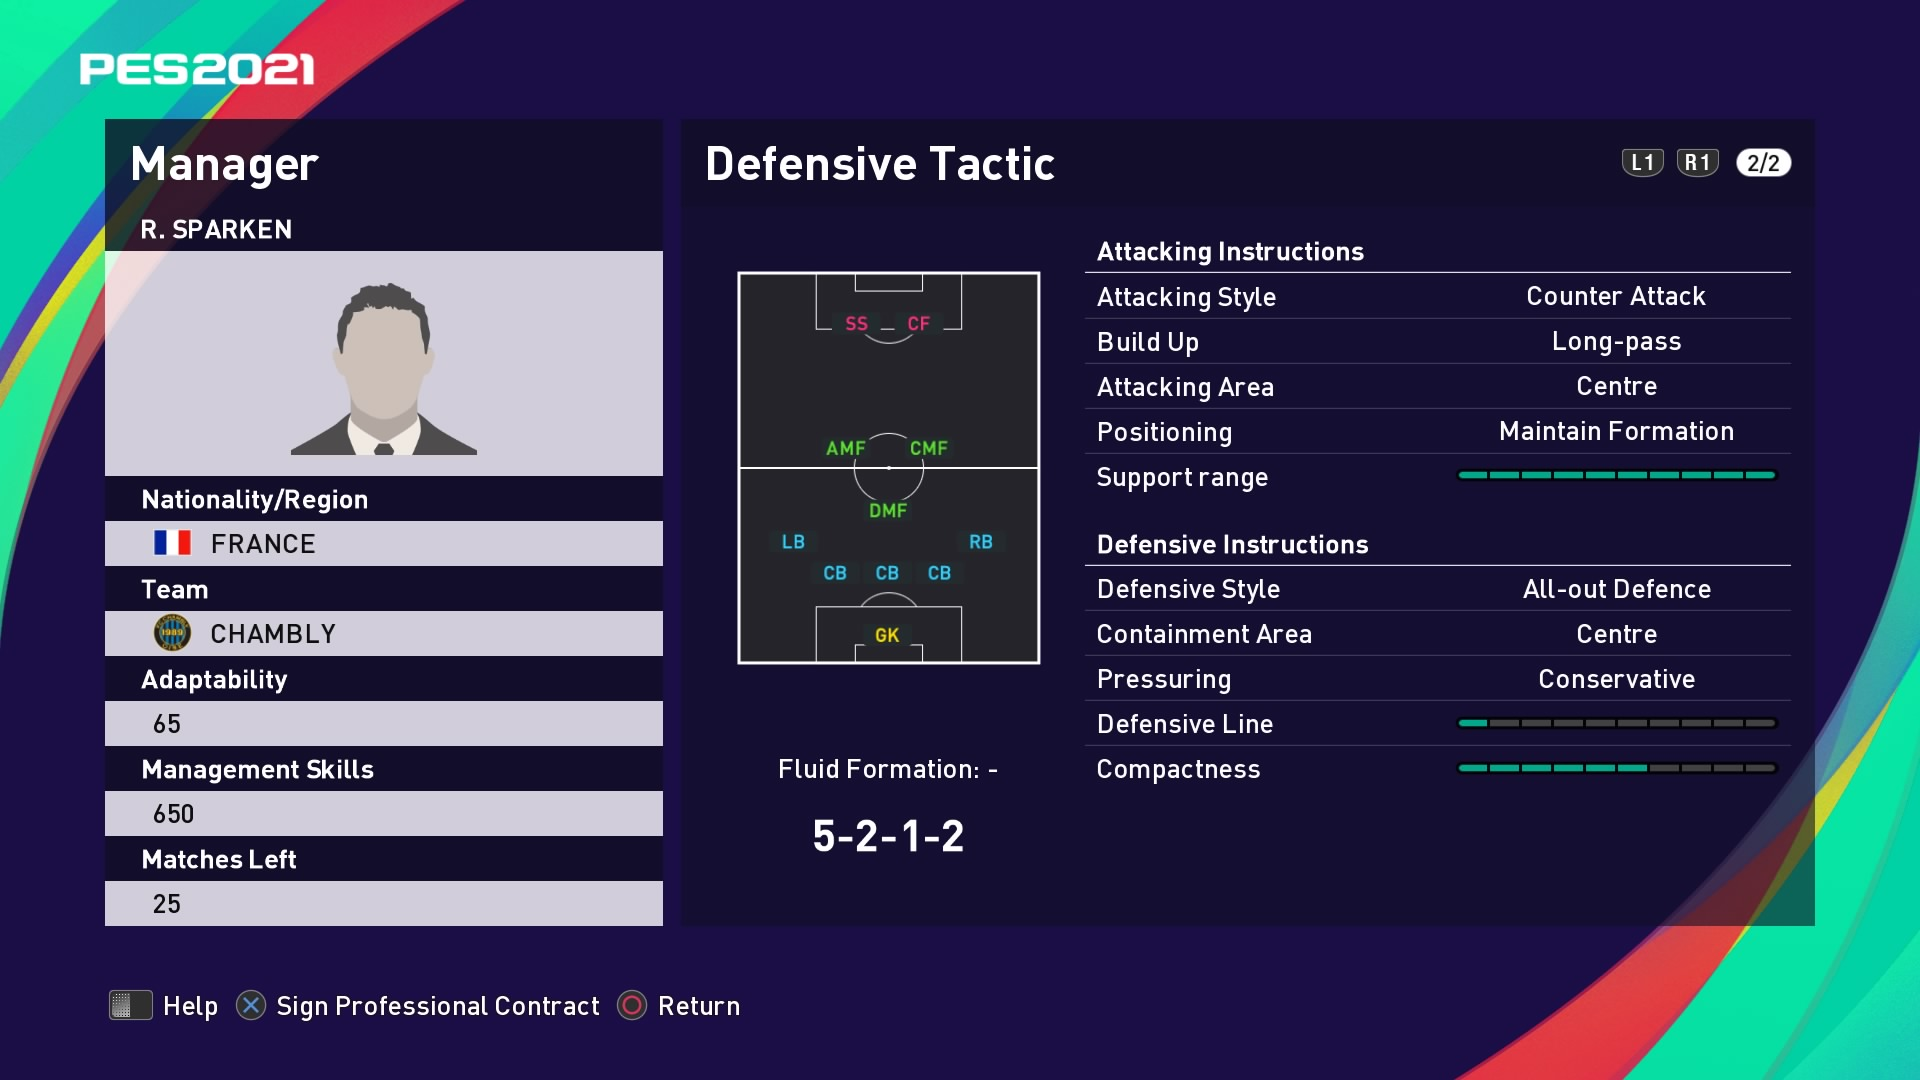 R. Sparken (Bruno Luzi) Defensive Tactic in PES 2021 myClub